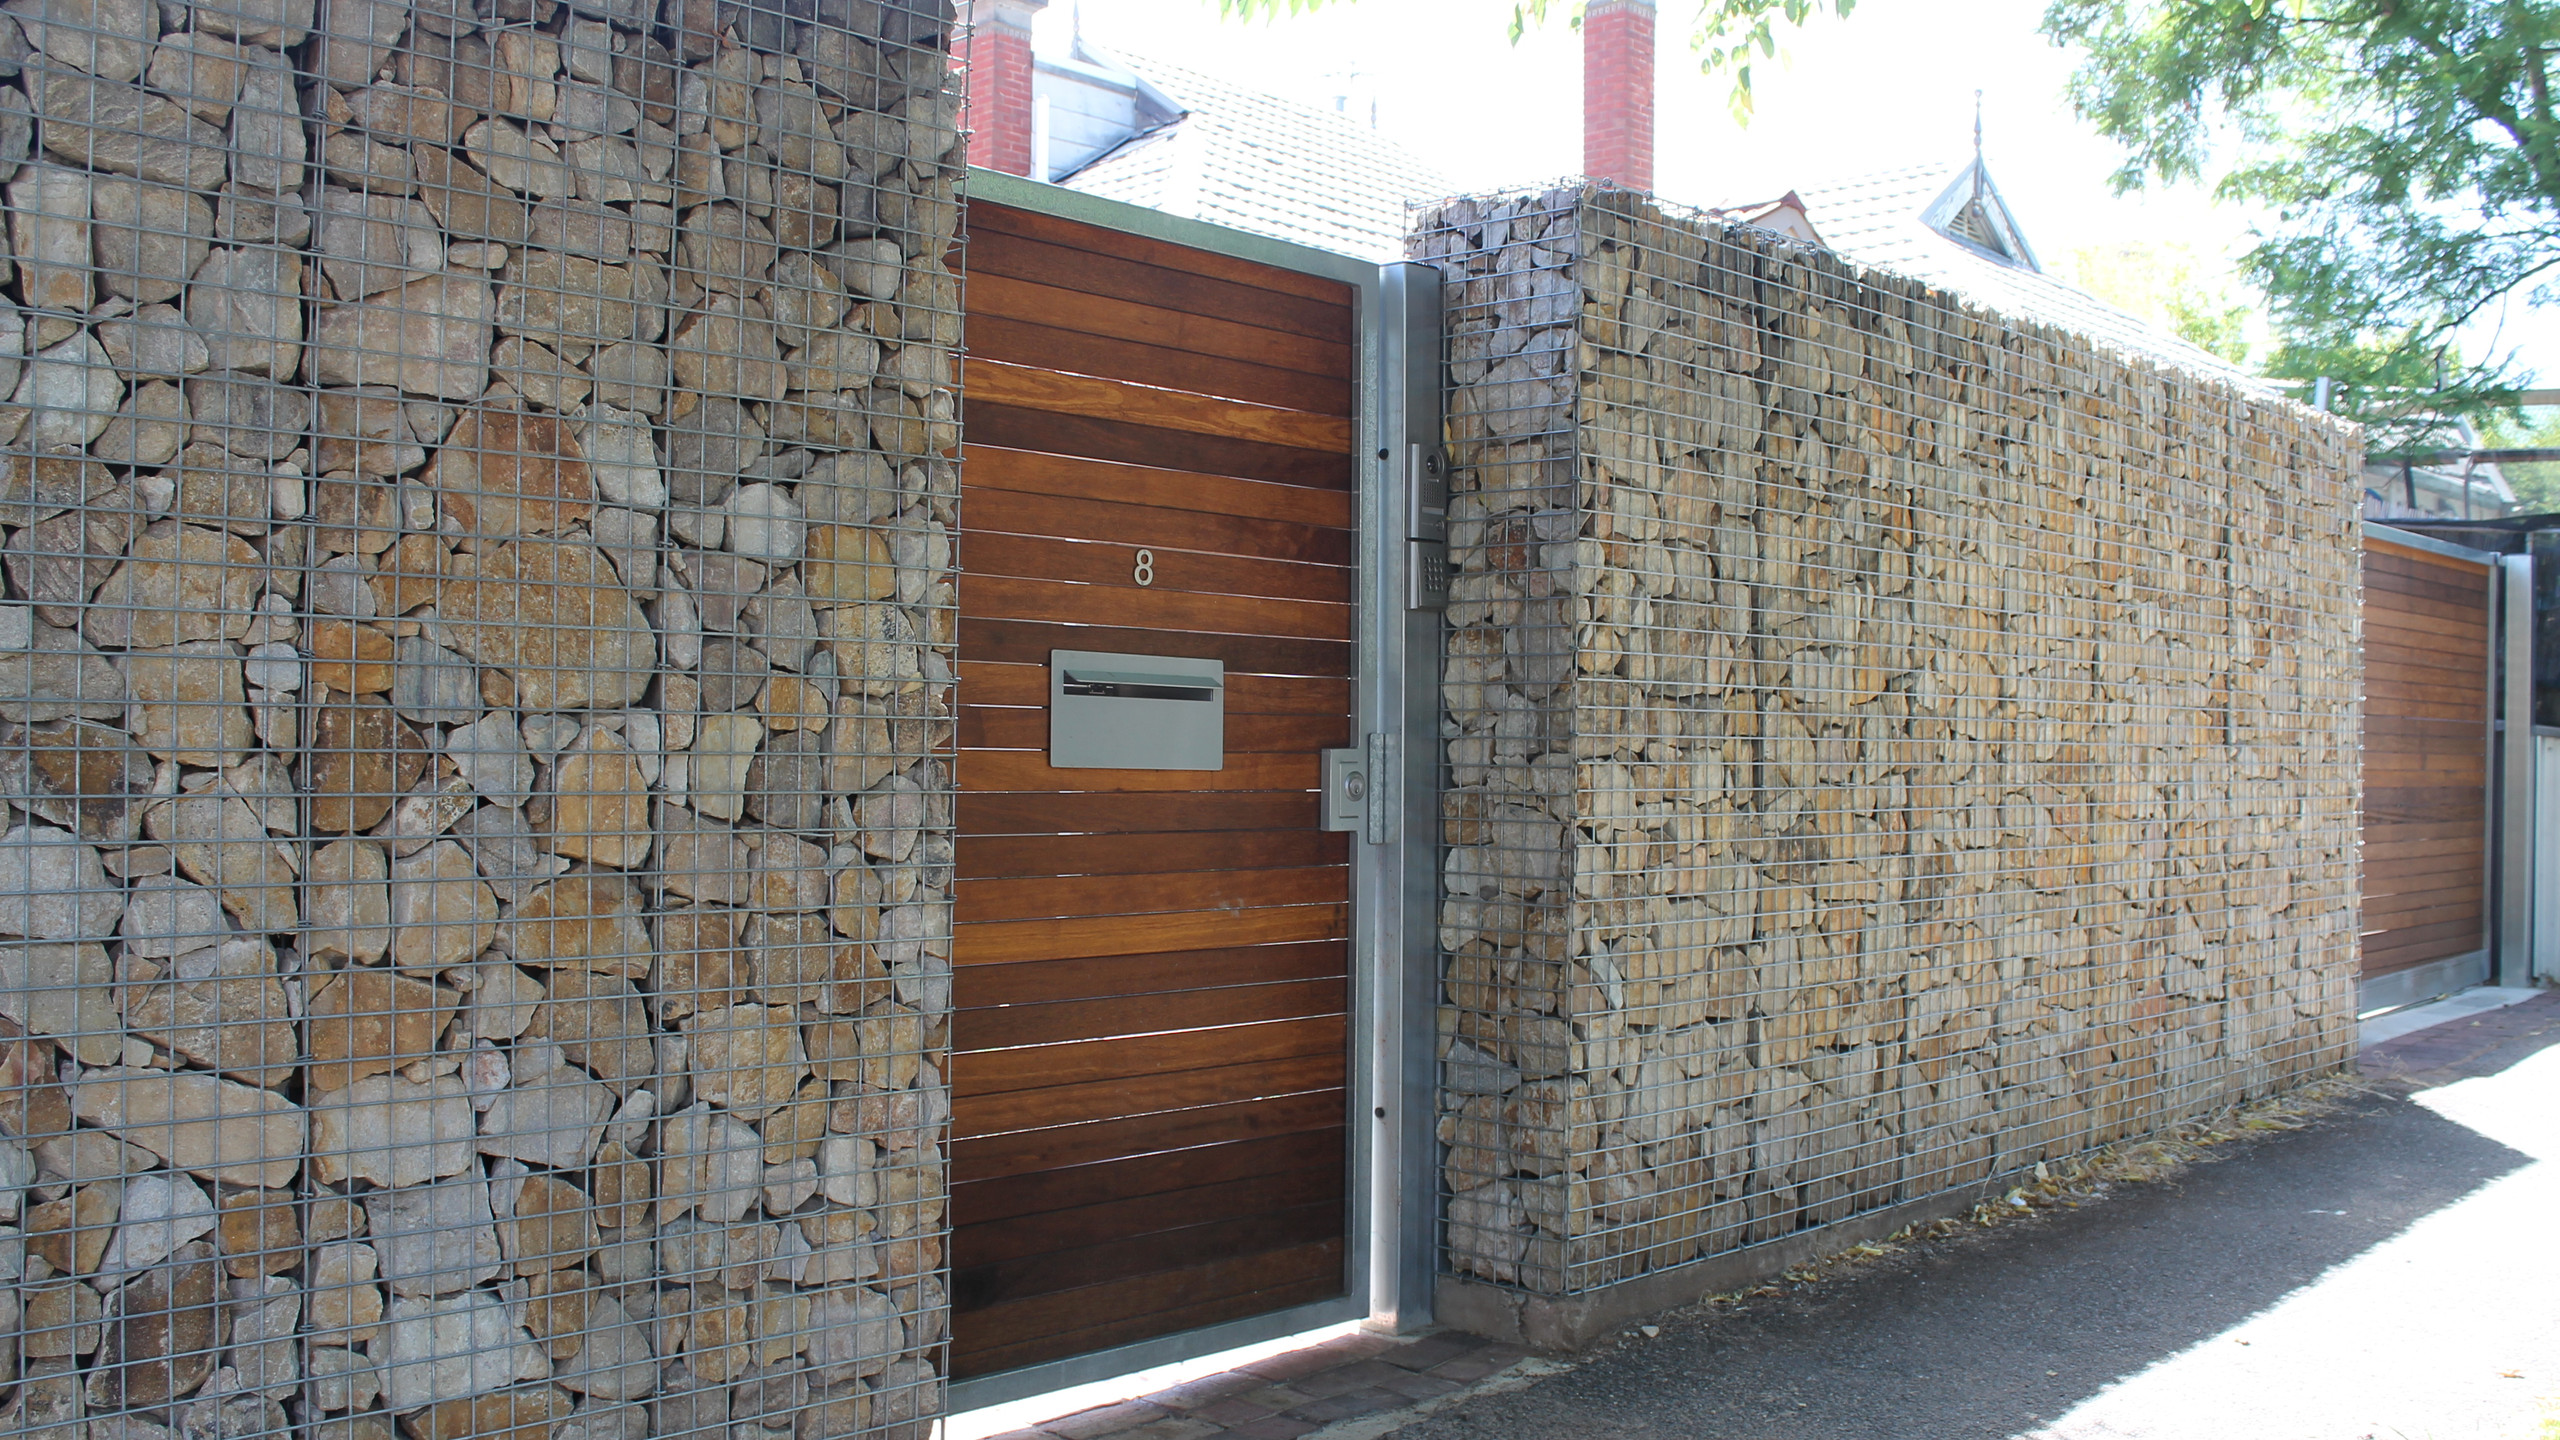 3. Soundproofing Outside